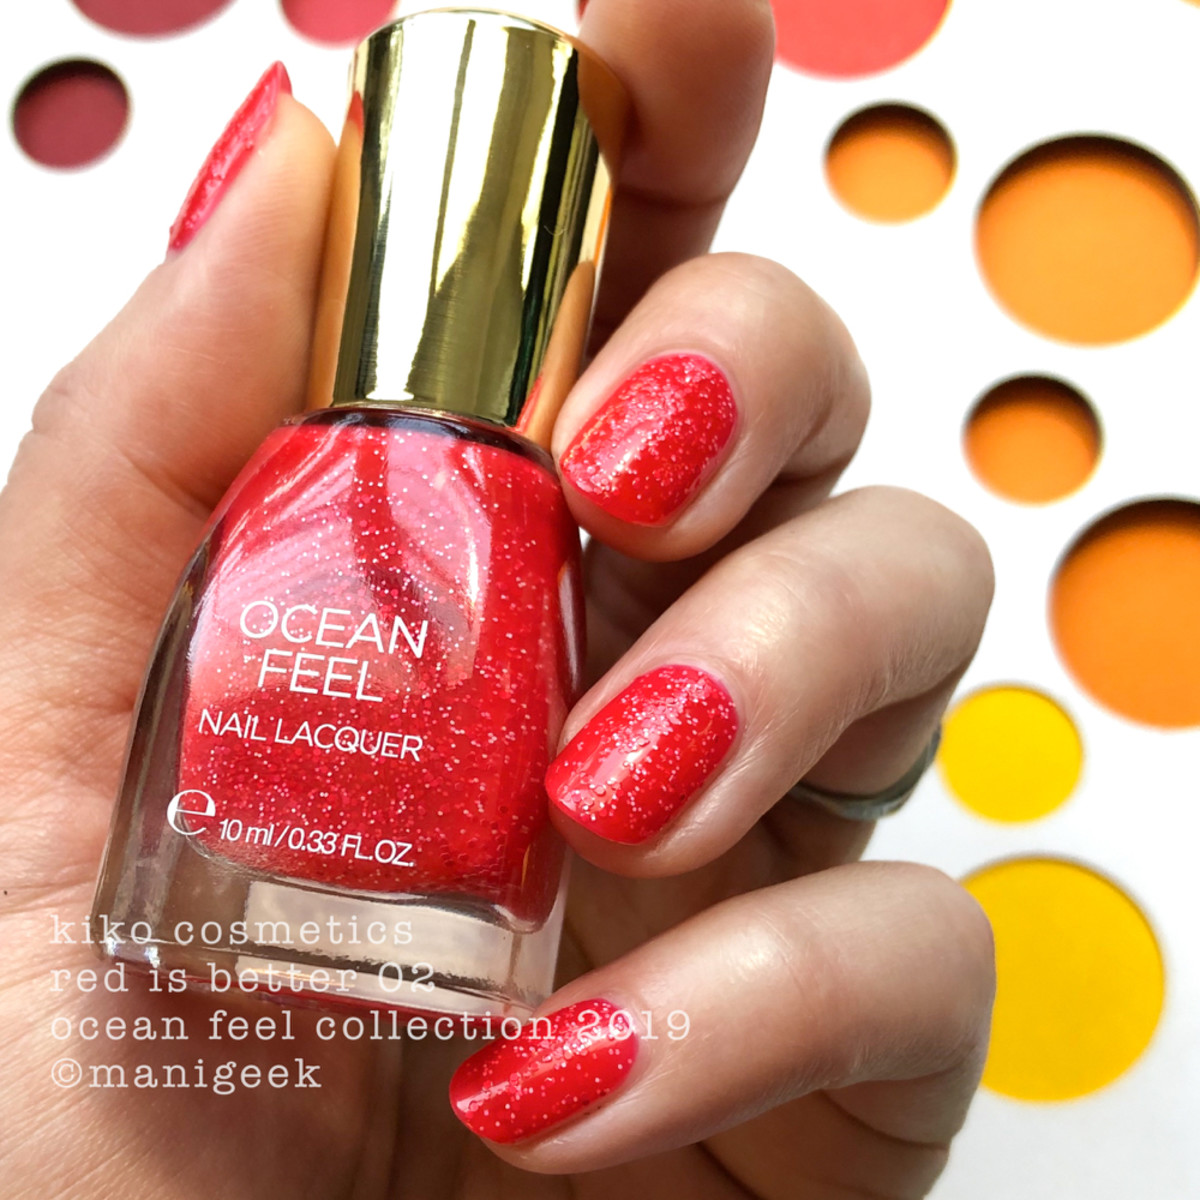 Kiko Cosmetics Red is Better 02 - Ocean Feel Nail Lacquer 2019